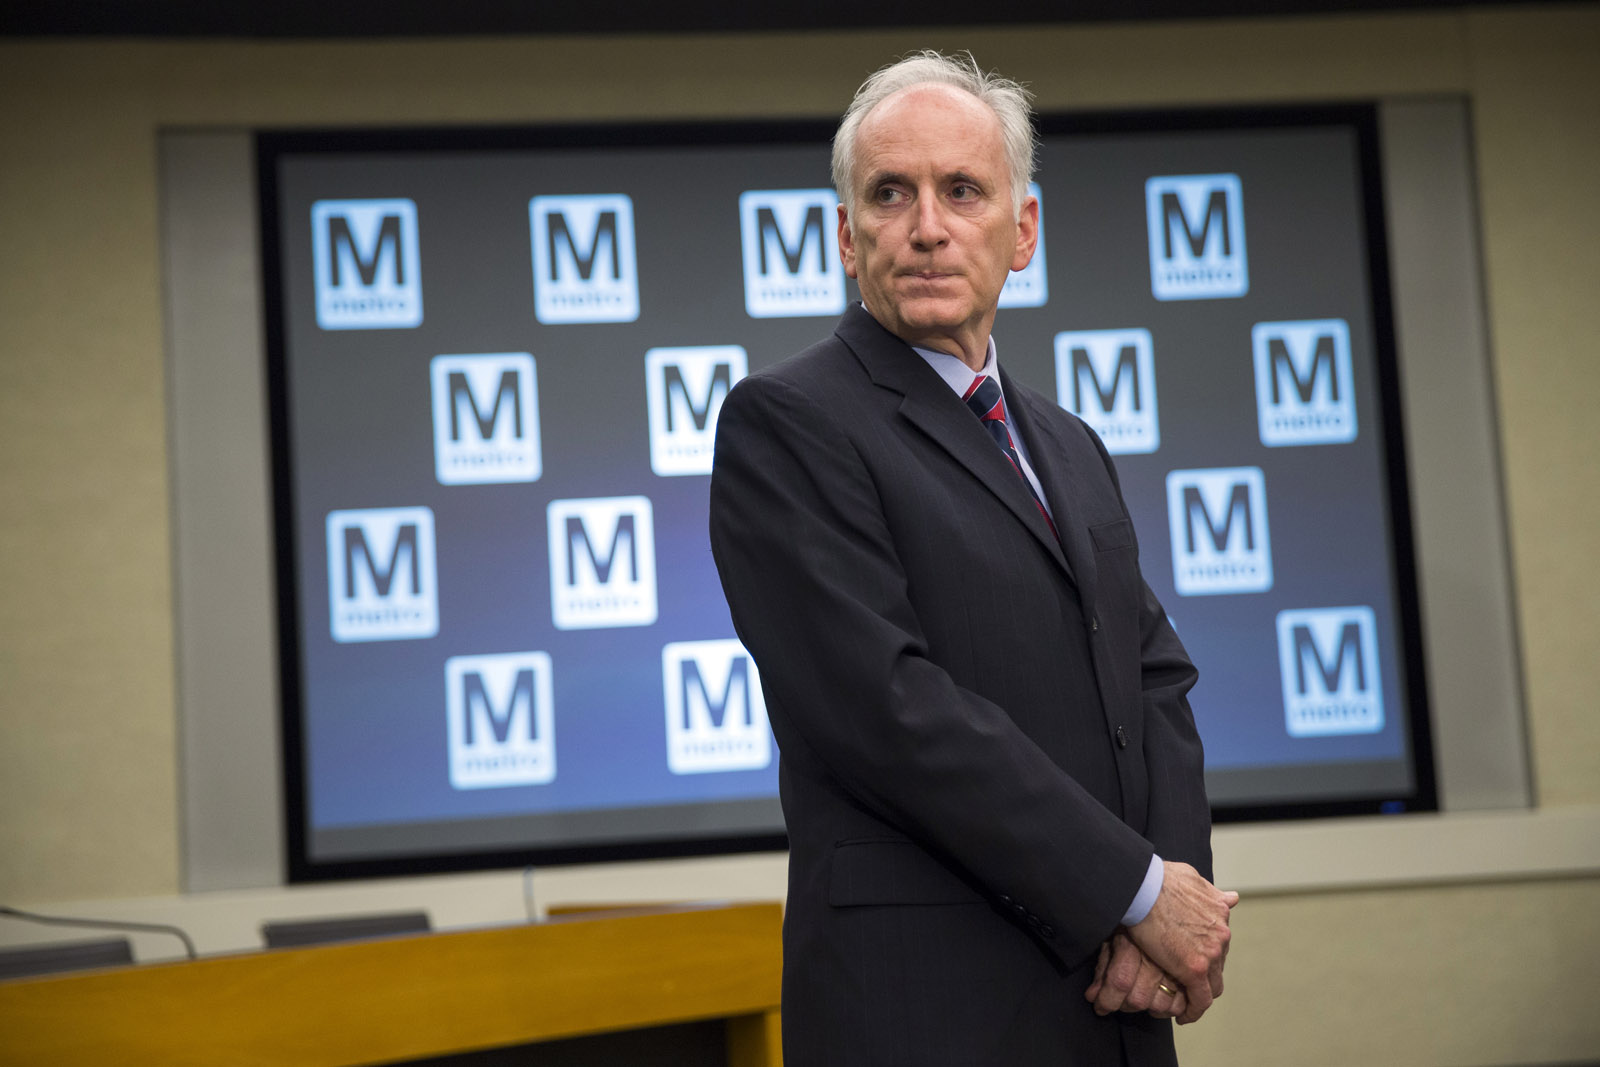 Metro general manager Paul Wiedefeld listens to a question in this  March 15, 2016, file photo. Friday he announced his plan to refurbish significant portions of the Metrorail system. The repairs will significantly reduce service for riders round-the-clock, include rush hour and weekend service, while entire stretches of track are closed or trains share a single track for weeks at a time. The yearlong repairs could begin as soon as June 4. (AP Photo/Evan Vucci)